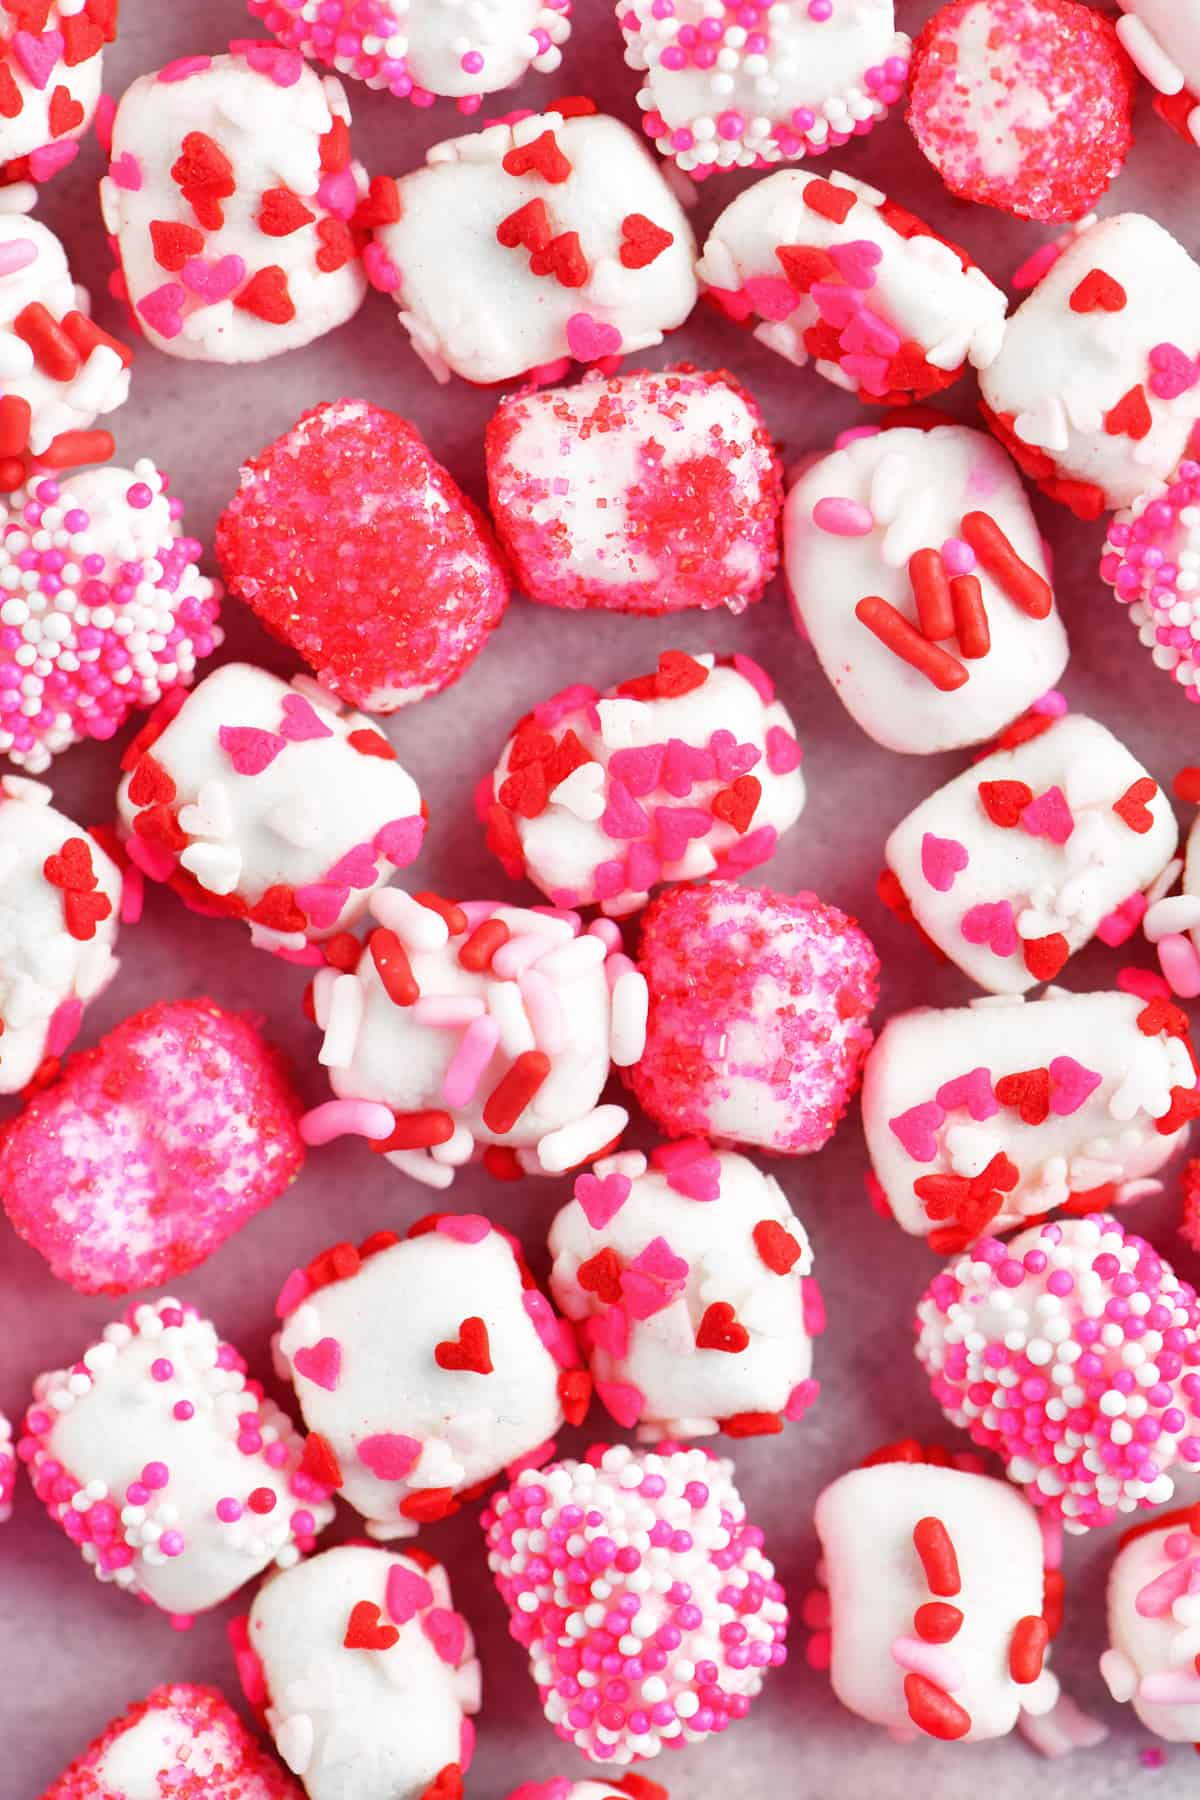 pink and red sprinkles on marshmallows